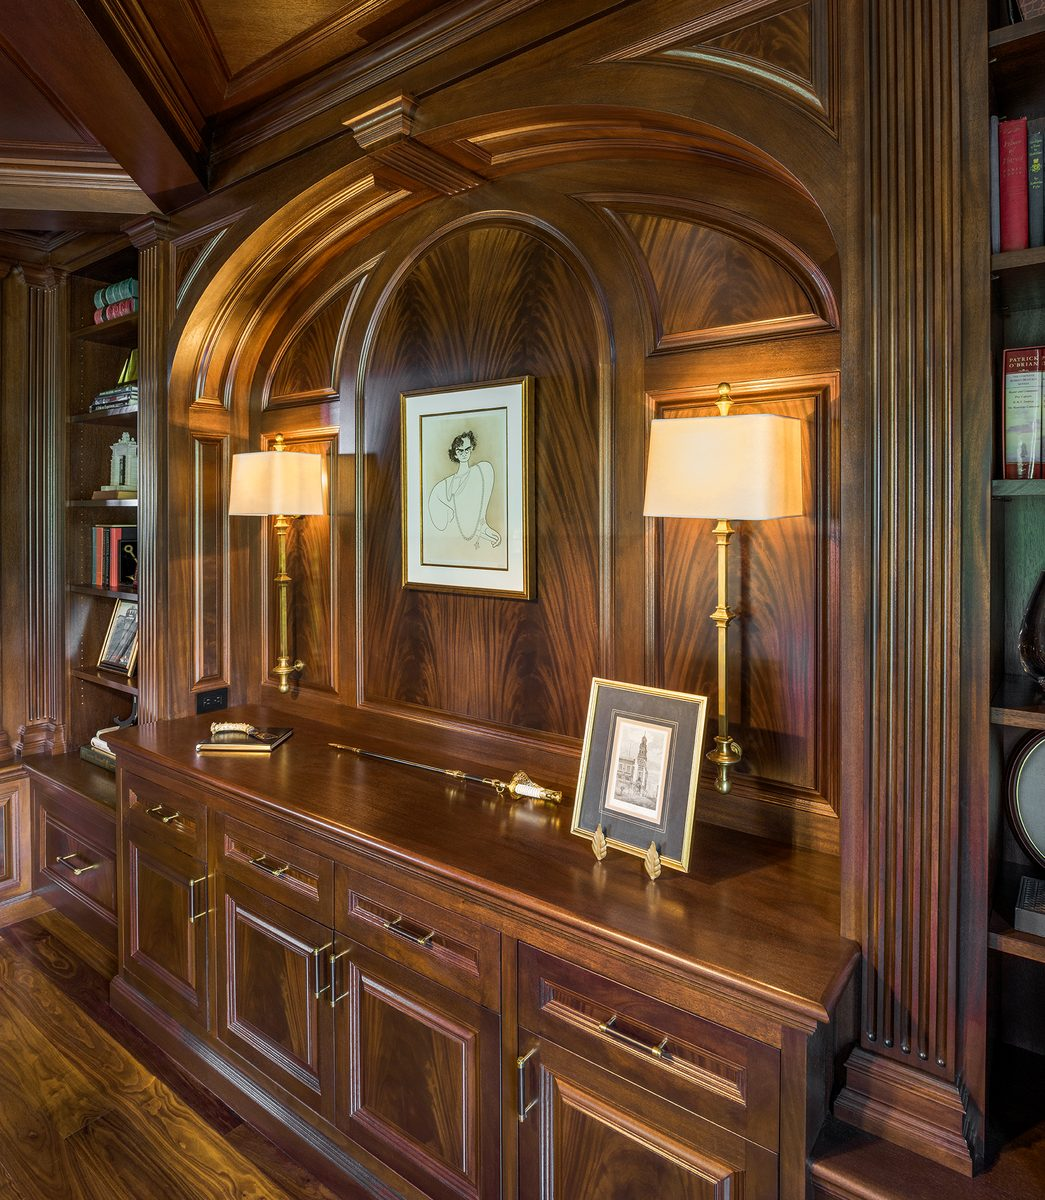 Millwork and Woodworking Photography